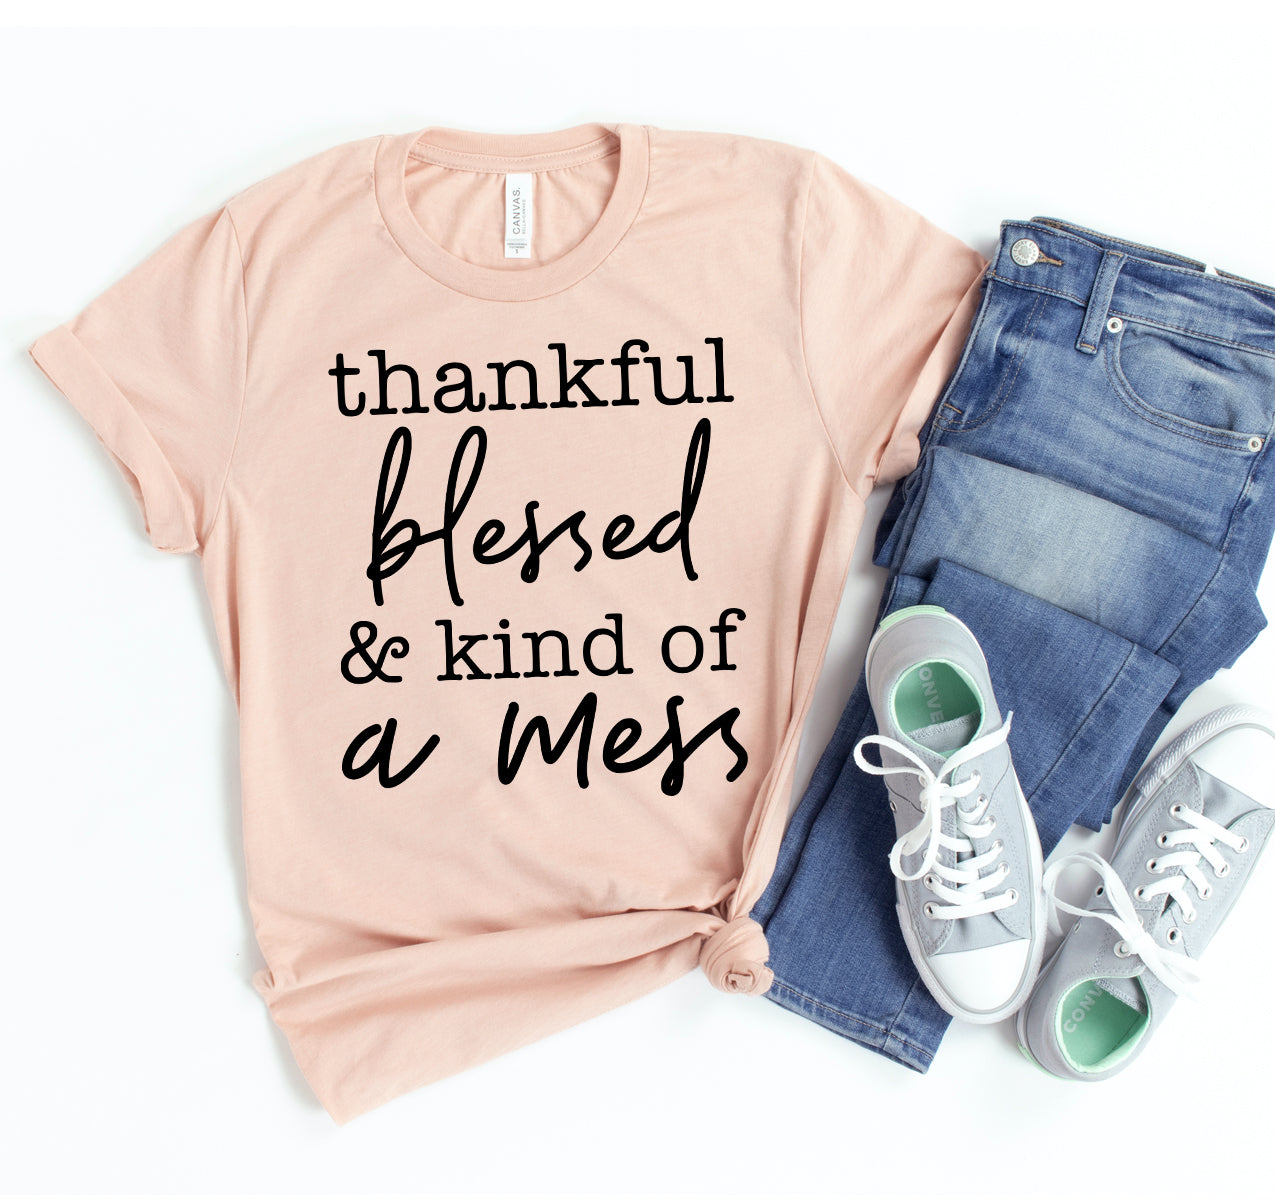 Thankful Blessed & Kind Of a Mess T-shirt